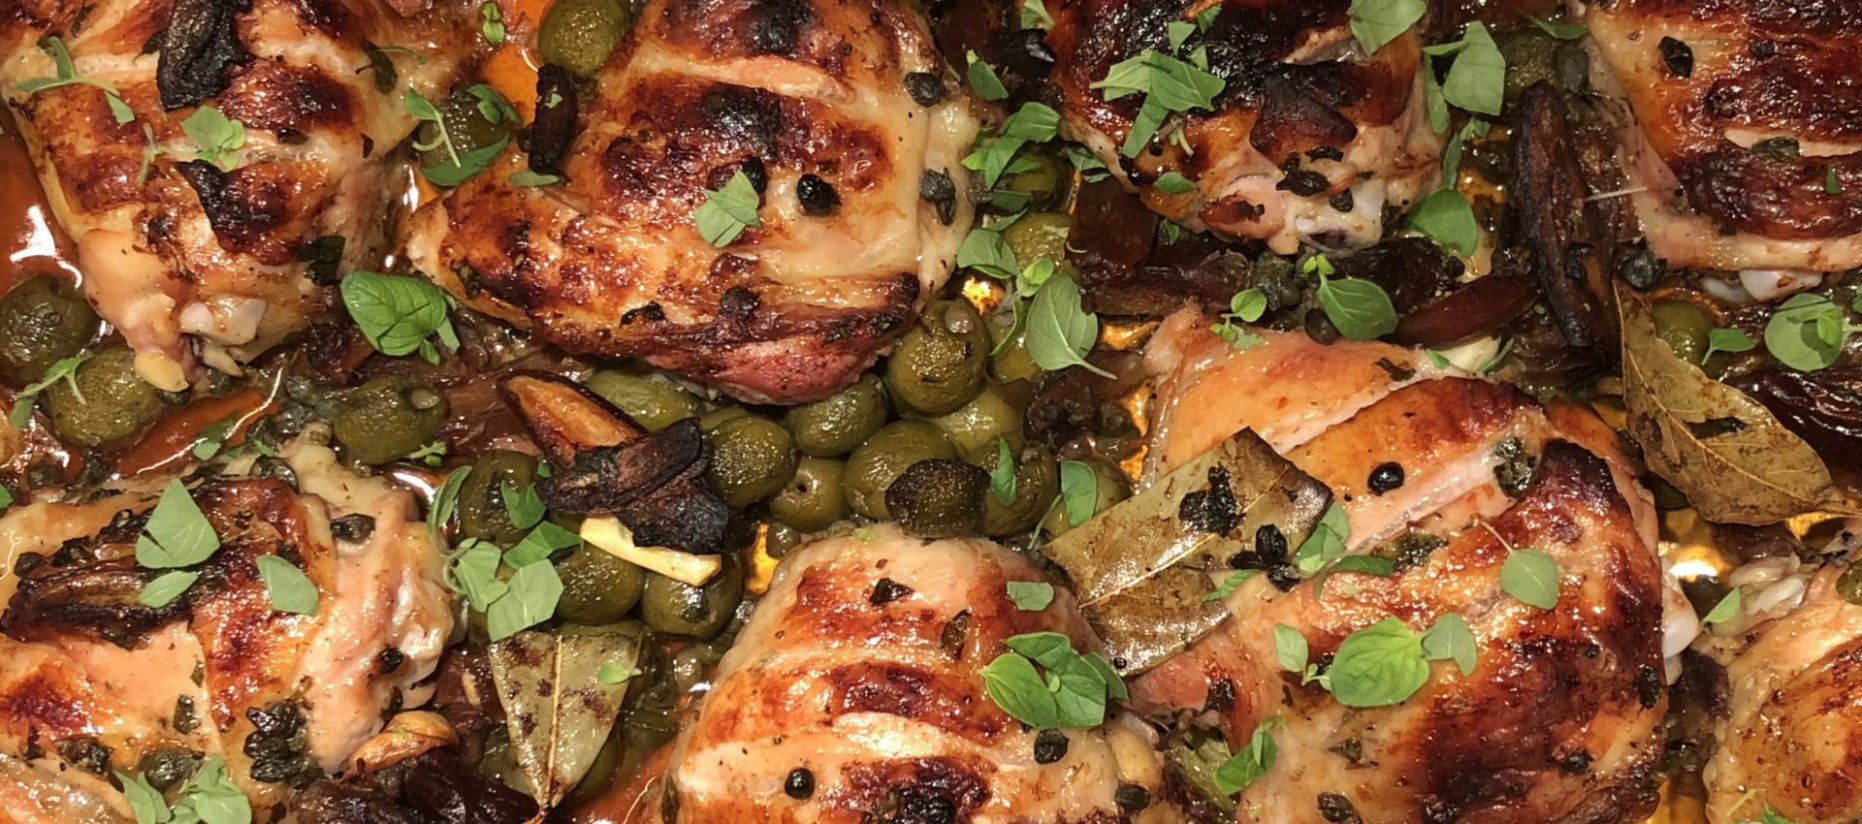 Ottolenghi's Simple: Chicken Marbella - Blythes Blog ..